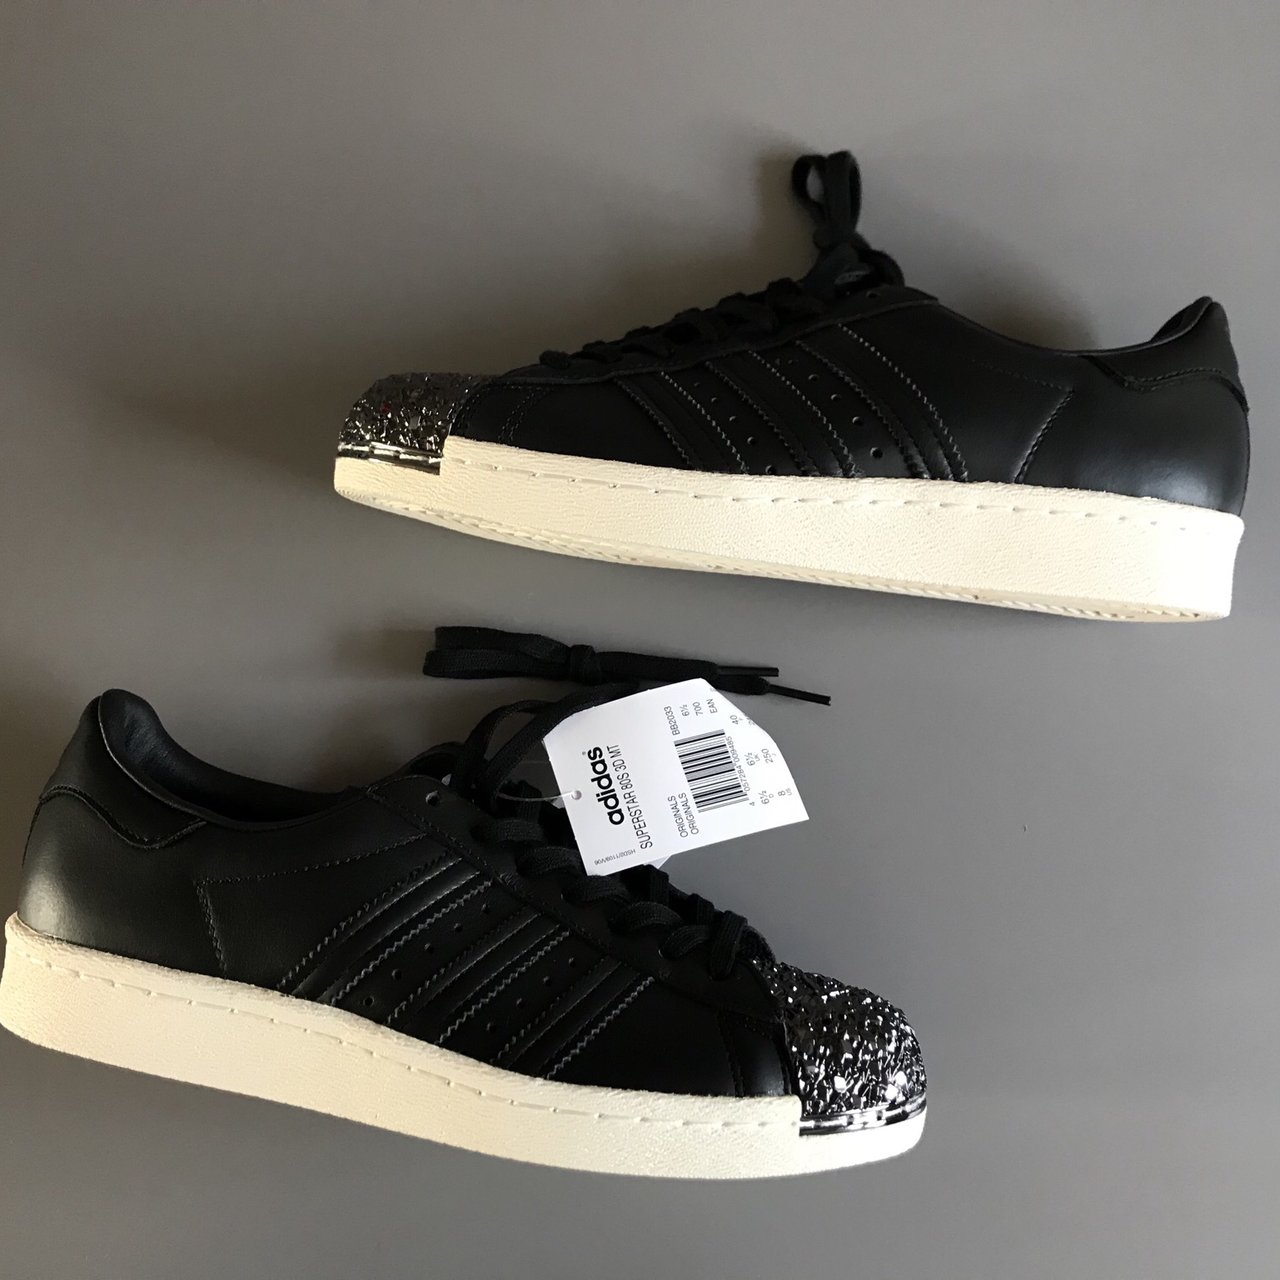 size 40 cea8a 5ea9f  soldroyd1. 6 months ago. Wakefield, United Kingdom. BRAND NEW ADIDAS  SUPERSTAR 80s 3D MT Sizes 6.5 and 5 UK available. These are great ...